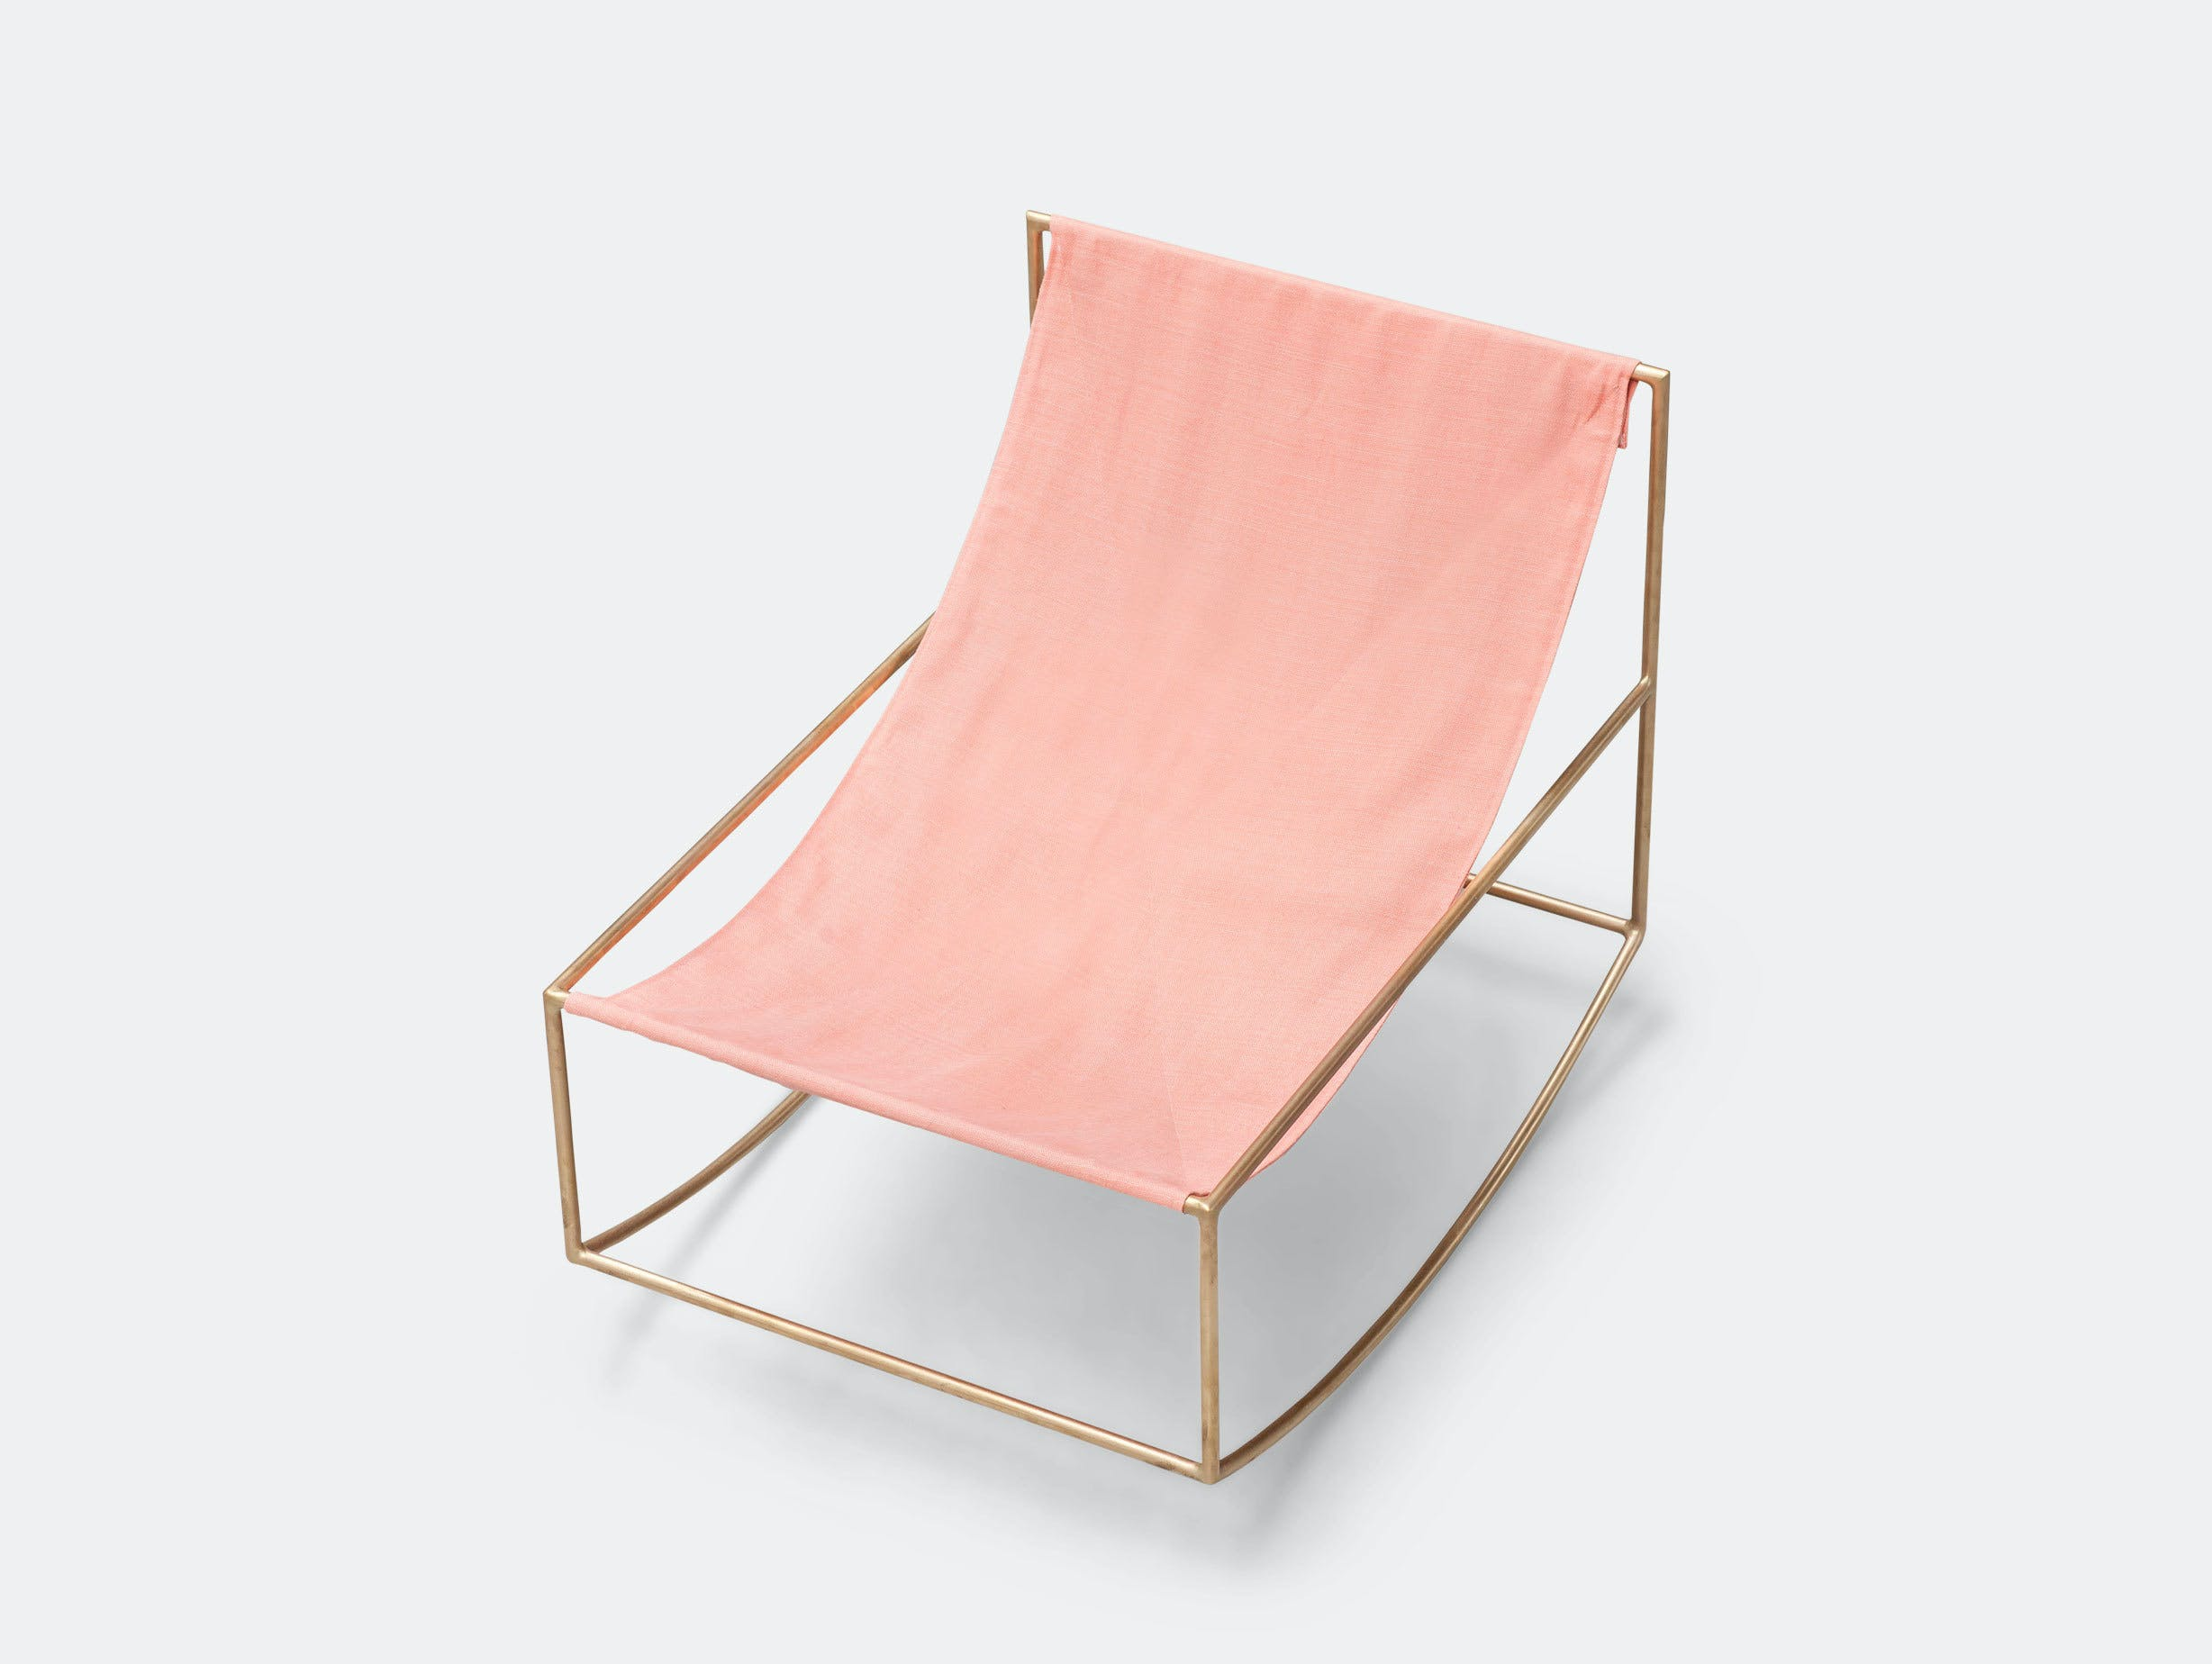 Valerie Objects Rocking Chair 1 Muller Van Severen